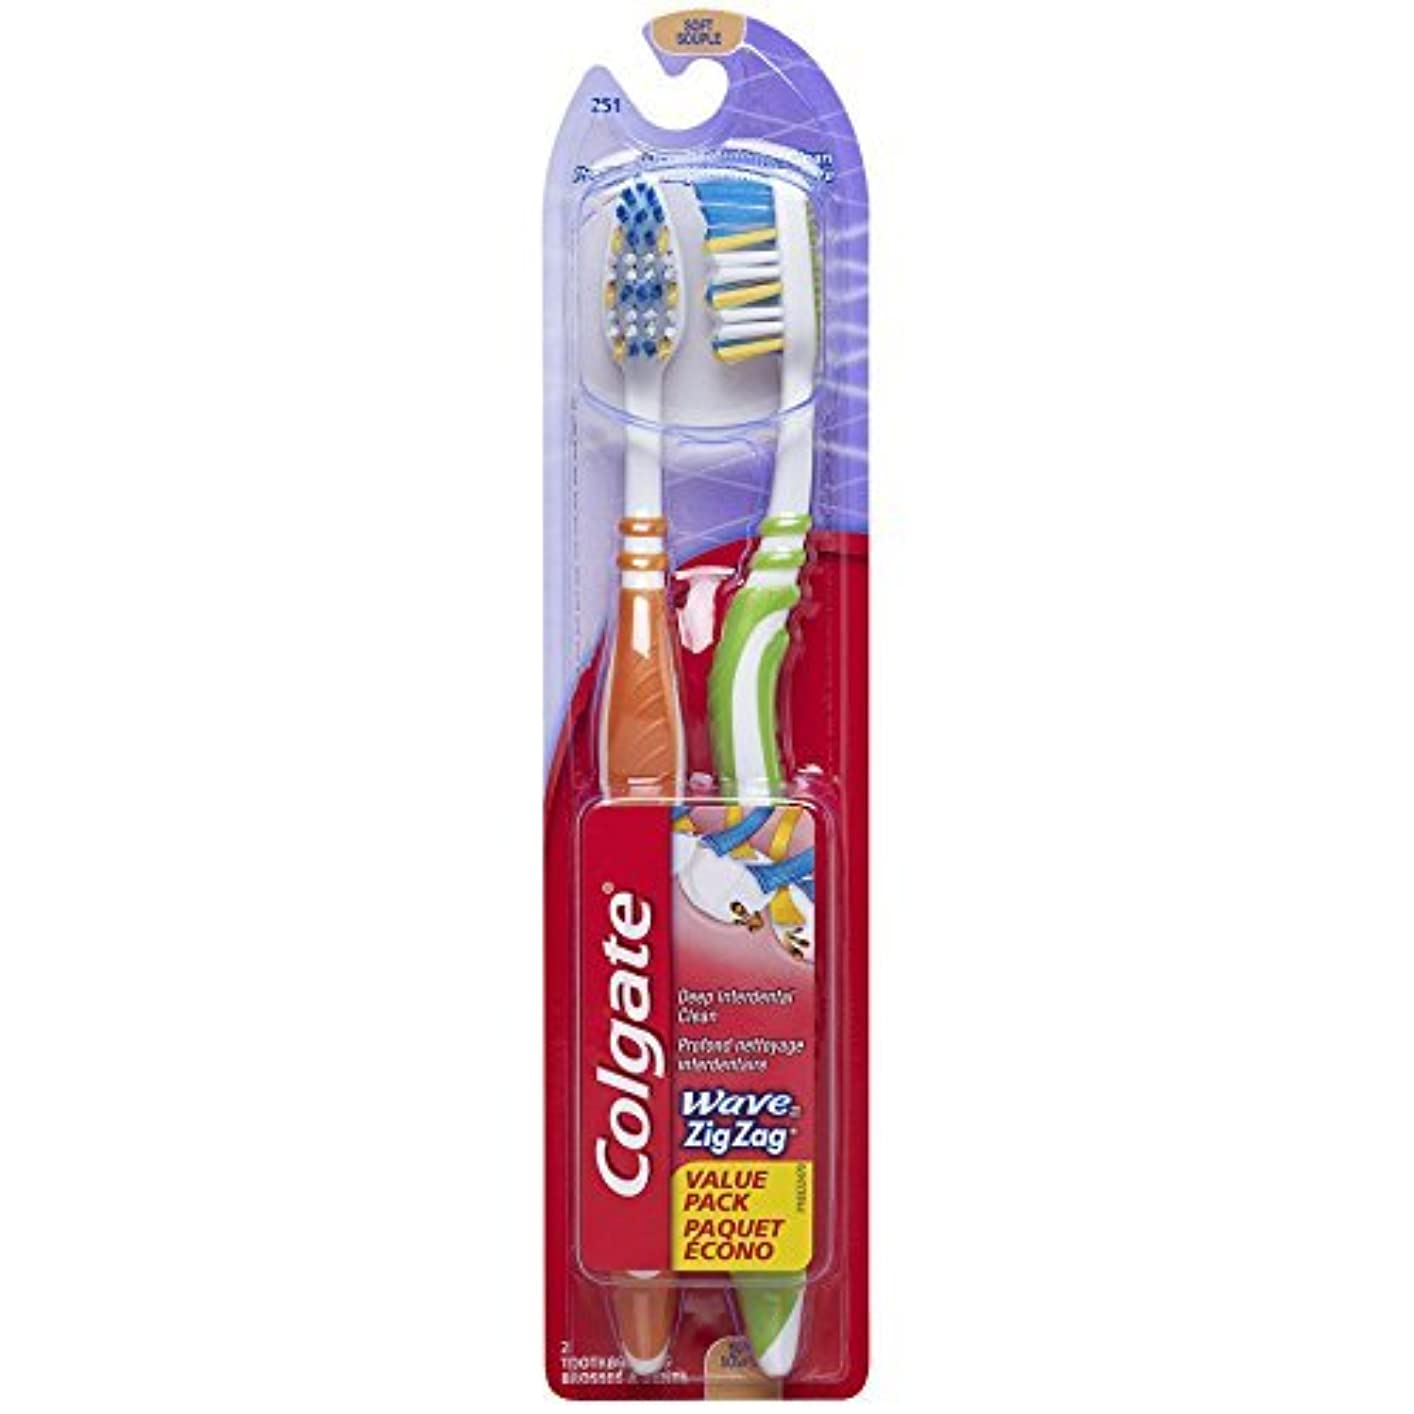 マイコン気怠い予感Colgate Wave Zig Zag Toothbrush Soft 2 Count (Pack of 6) [並行輸入品]